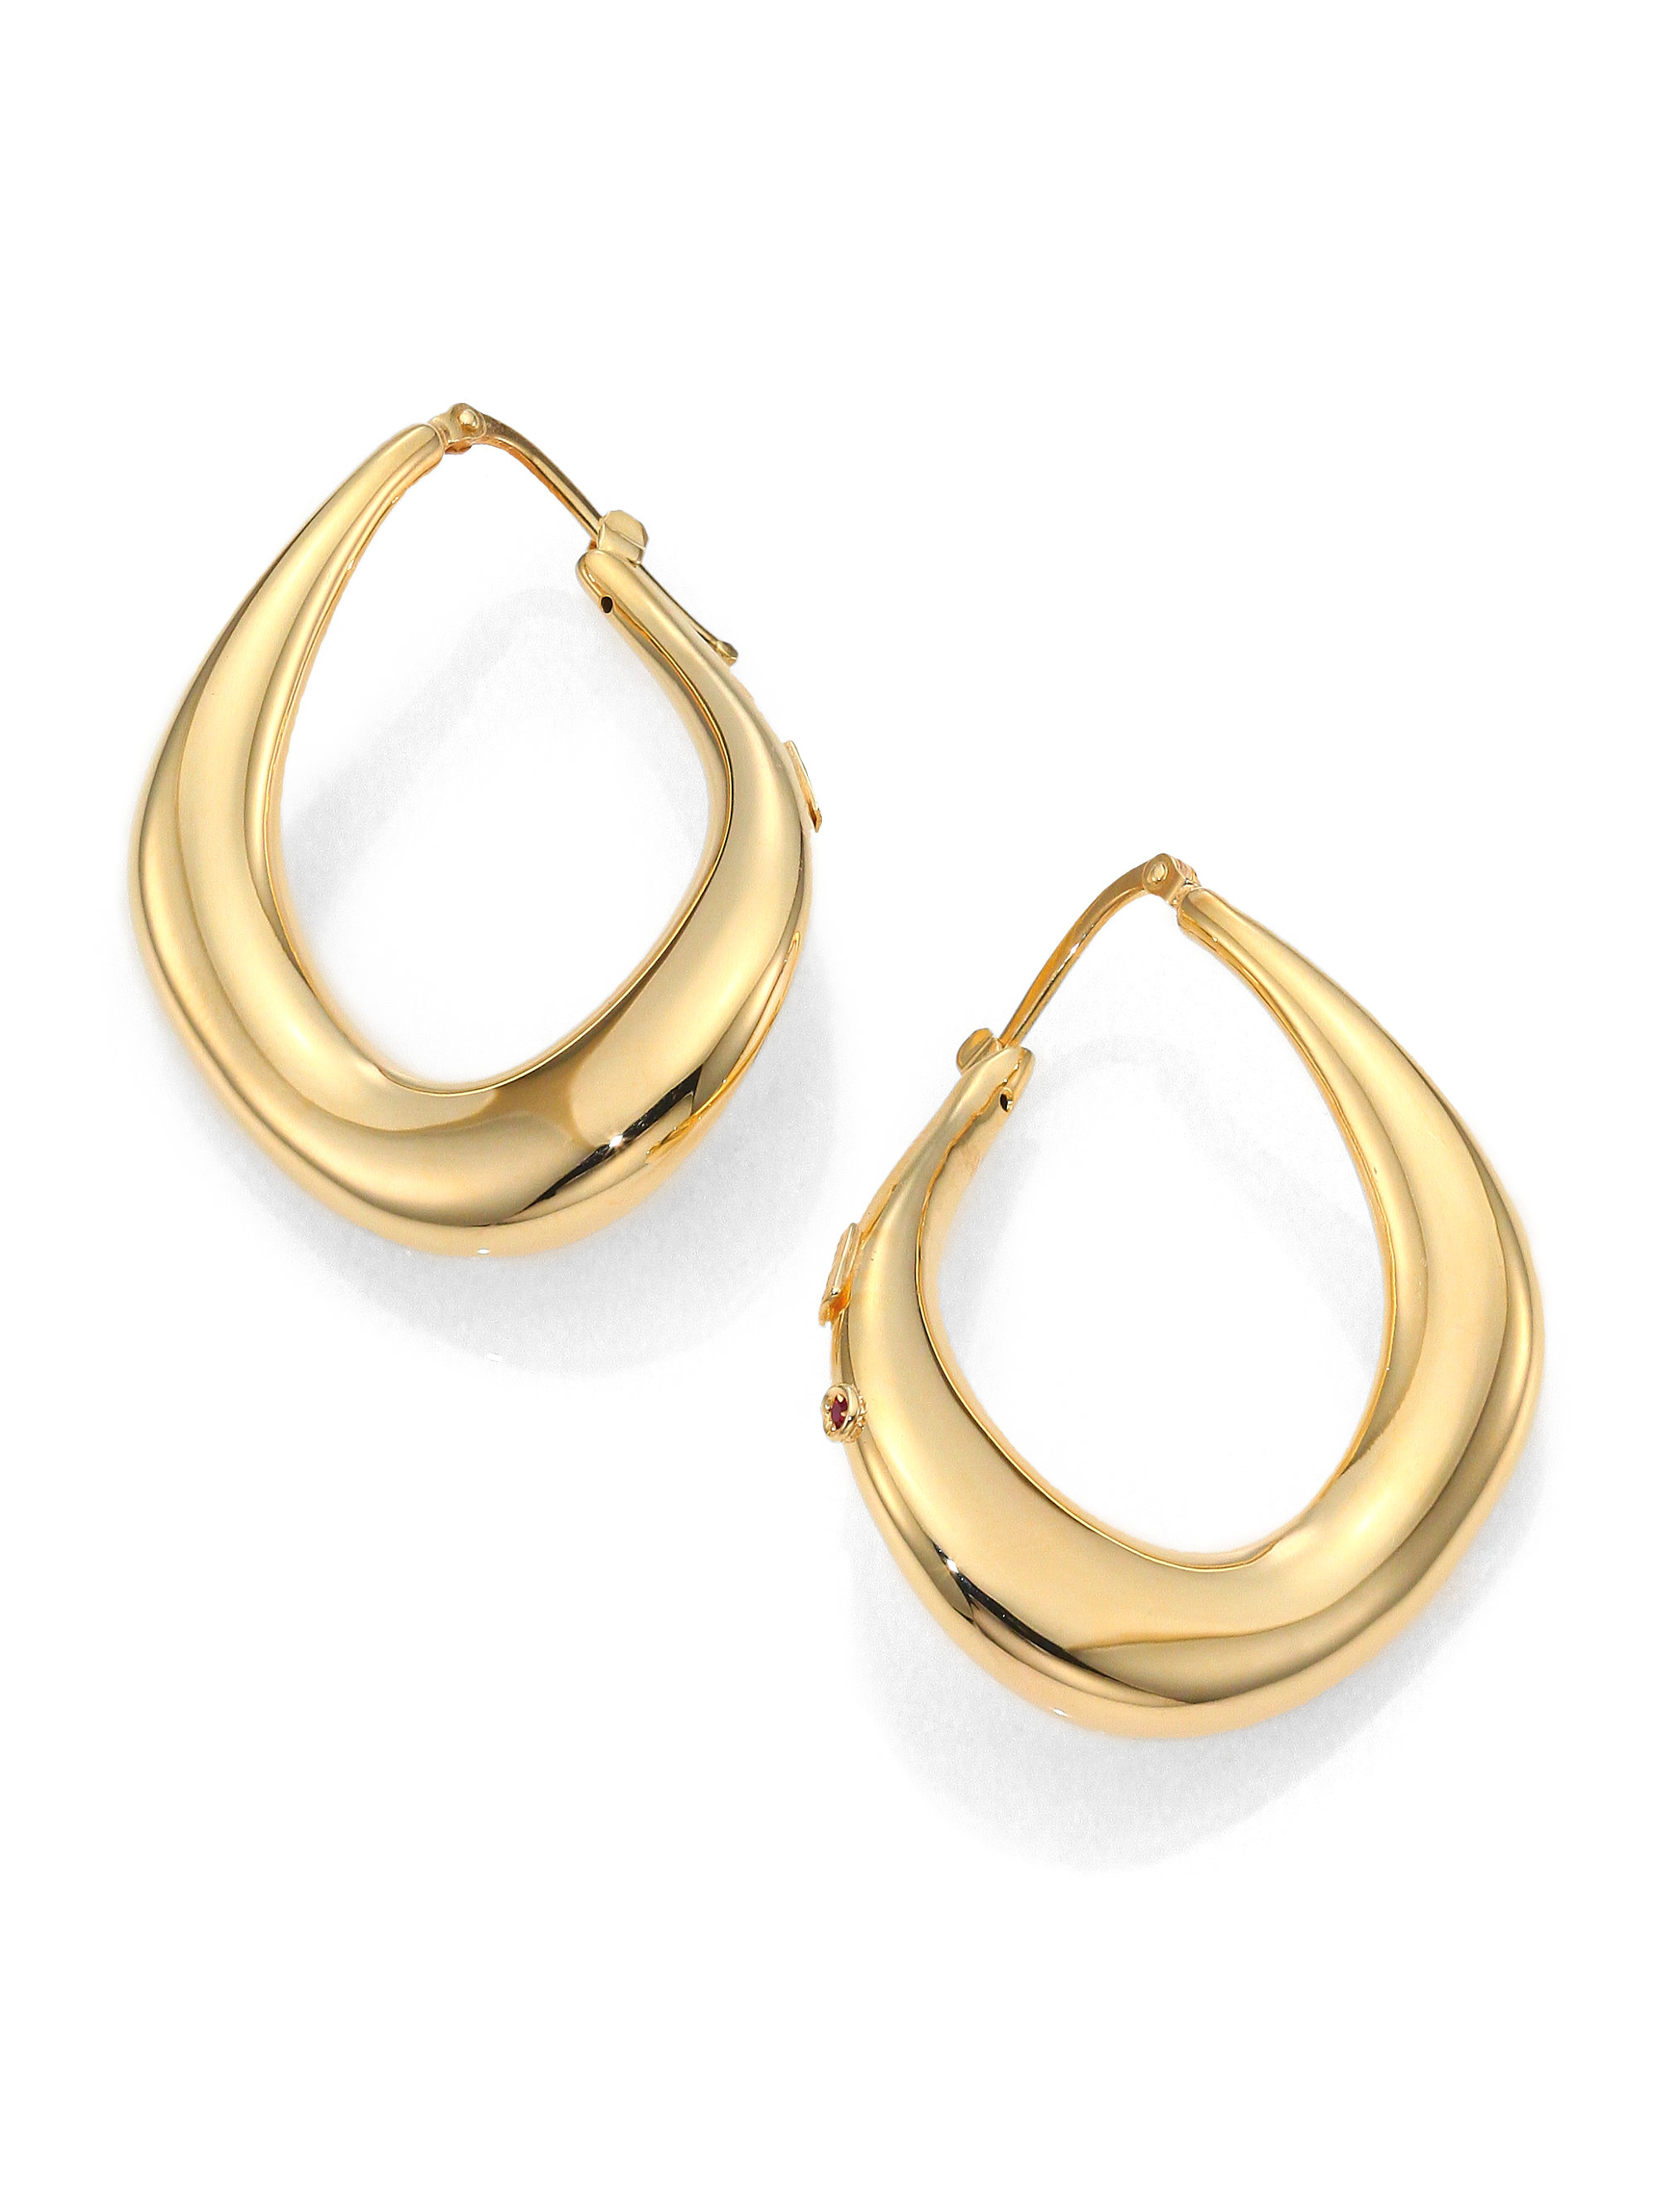 36c862996 Get this amazing deal on Roberto Coin Classica Parisienne Diamond Oval  Earrings.The clean lines of these round earrings are interrupted by a  horizontal.